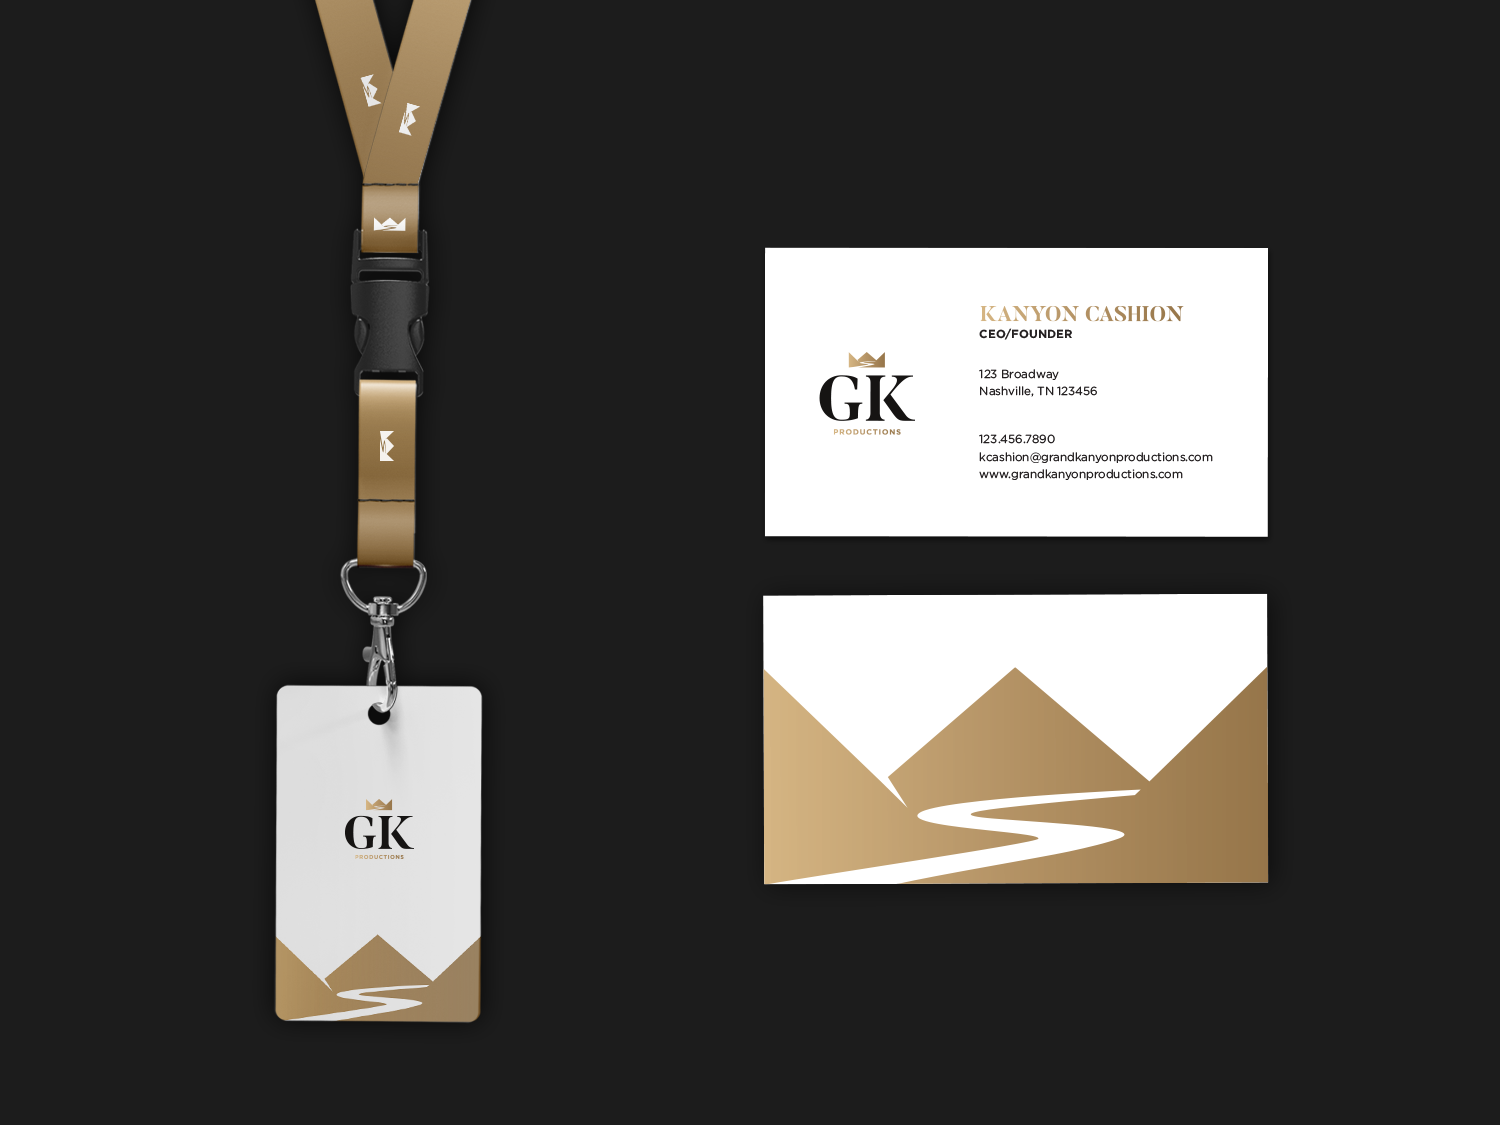 Grand Kanyon Productions 🎶 mockup businesscard lanyard grand event productions designer type digital designer icon digital design vector logo deisgn typography logo identity branding brand graphic  design design